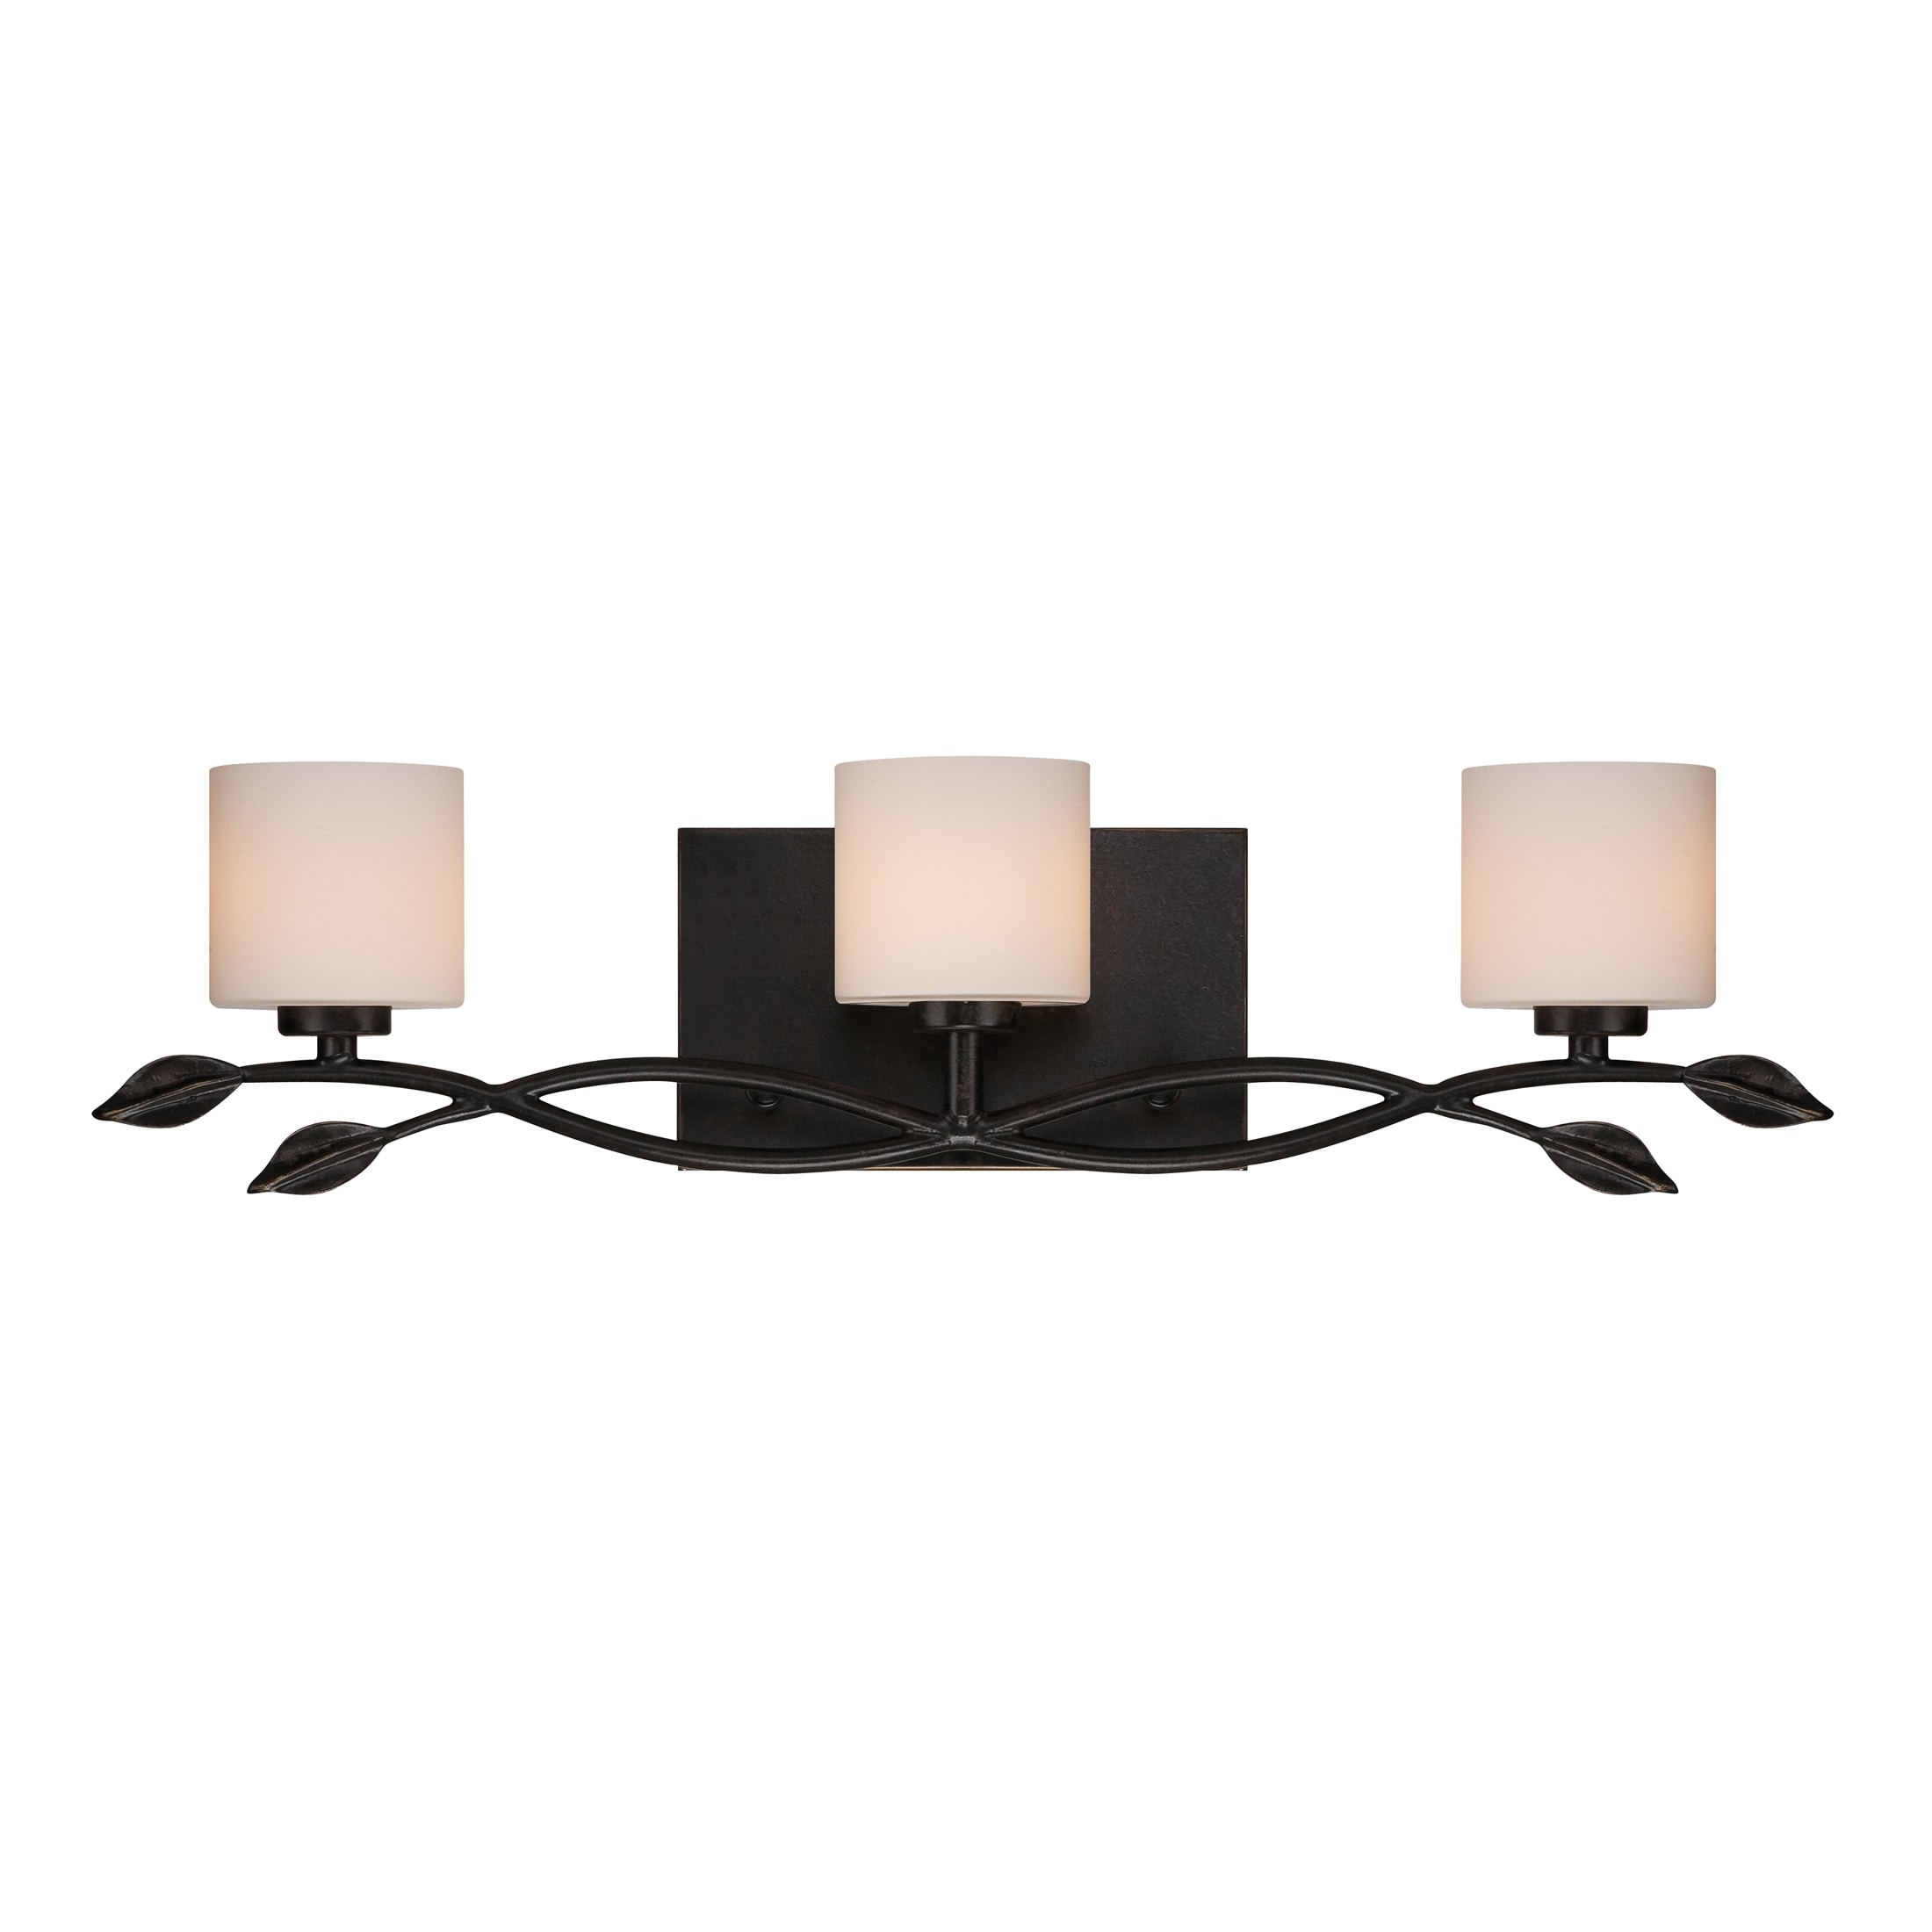 Quoizel 'Erin' Three-light Bath Fixture